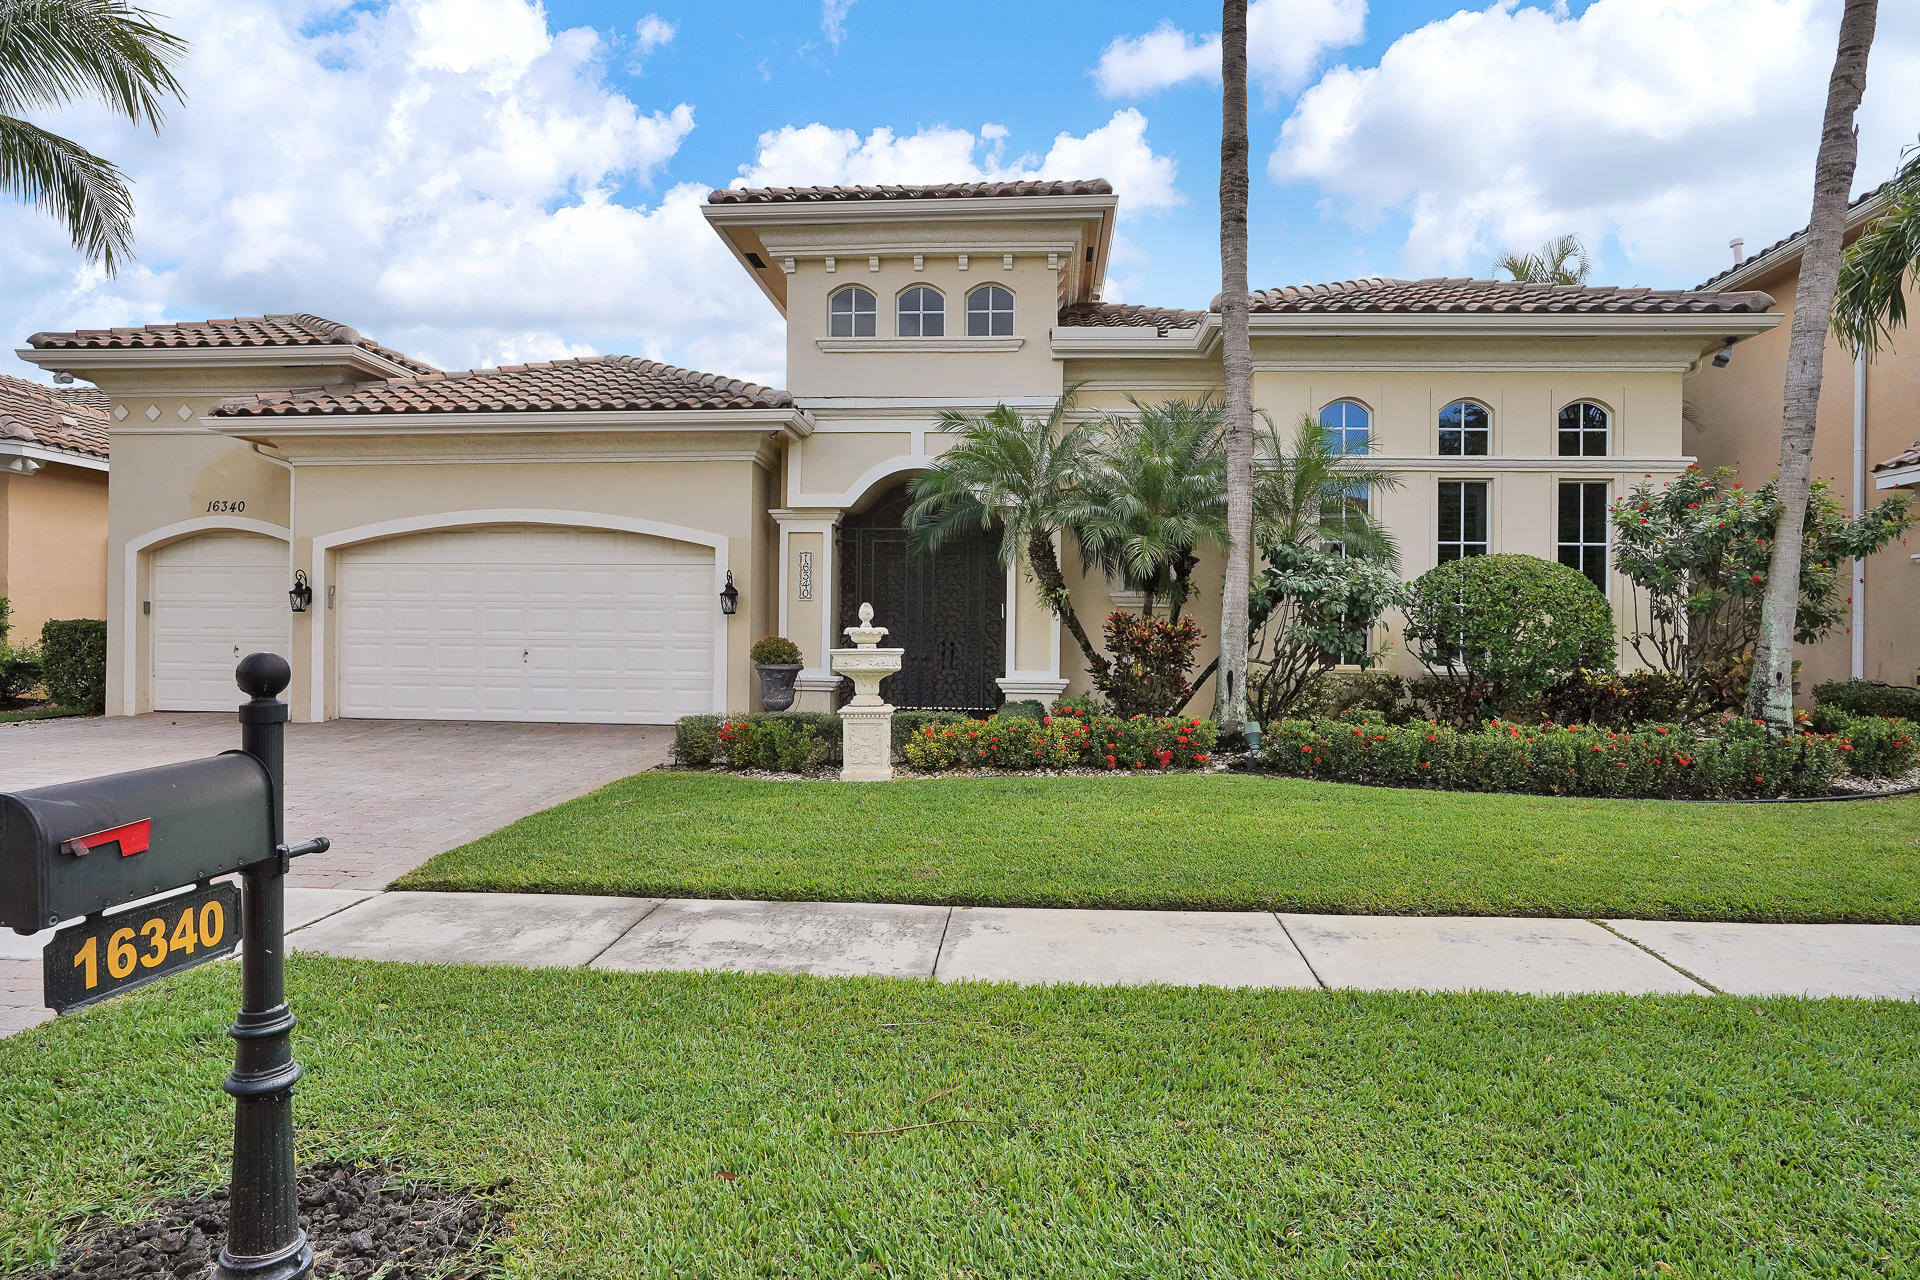 Photo of 16340 Via Venetia E, Delray Beach, FL 33484